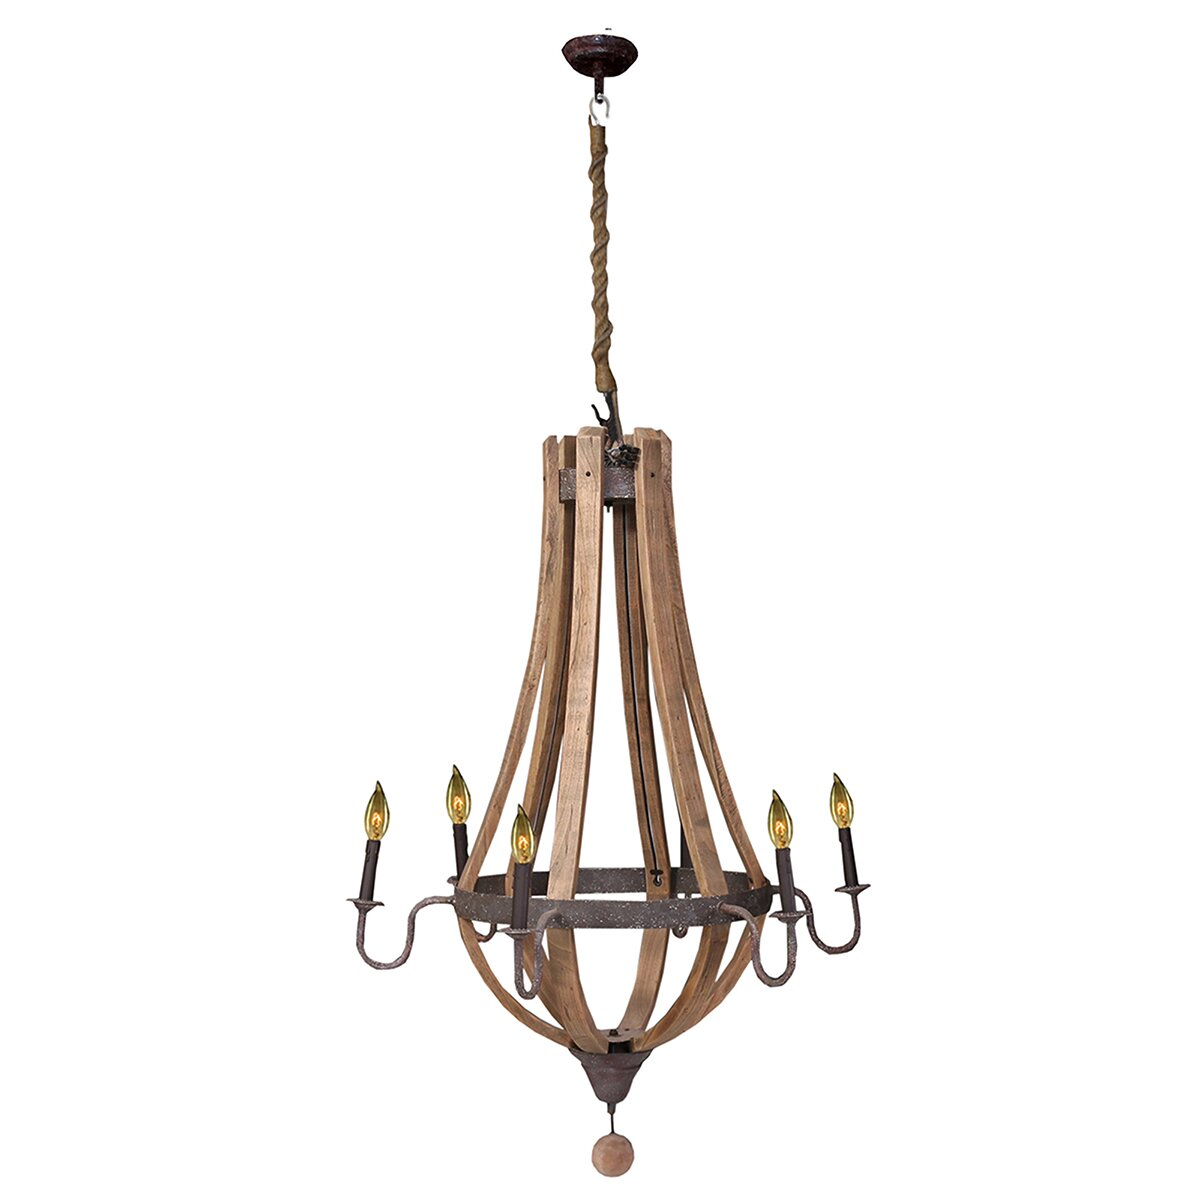 Laurel Foundry Modern Farmhouse Amberly 6 Light Candle